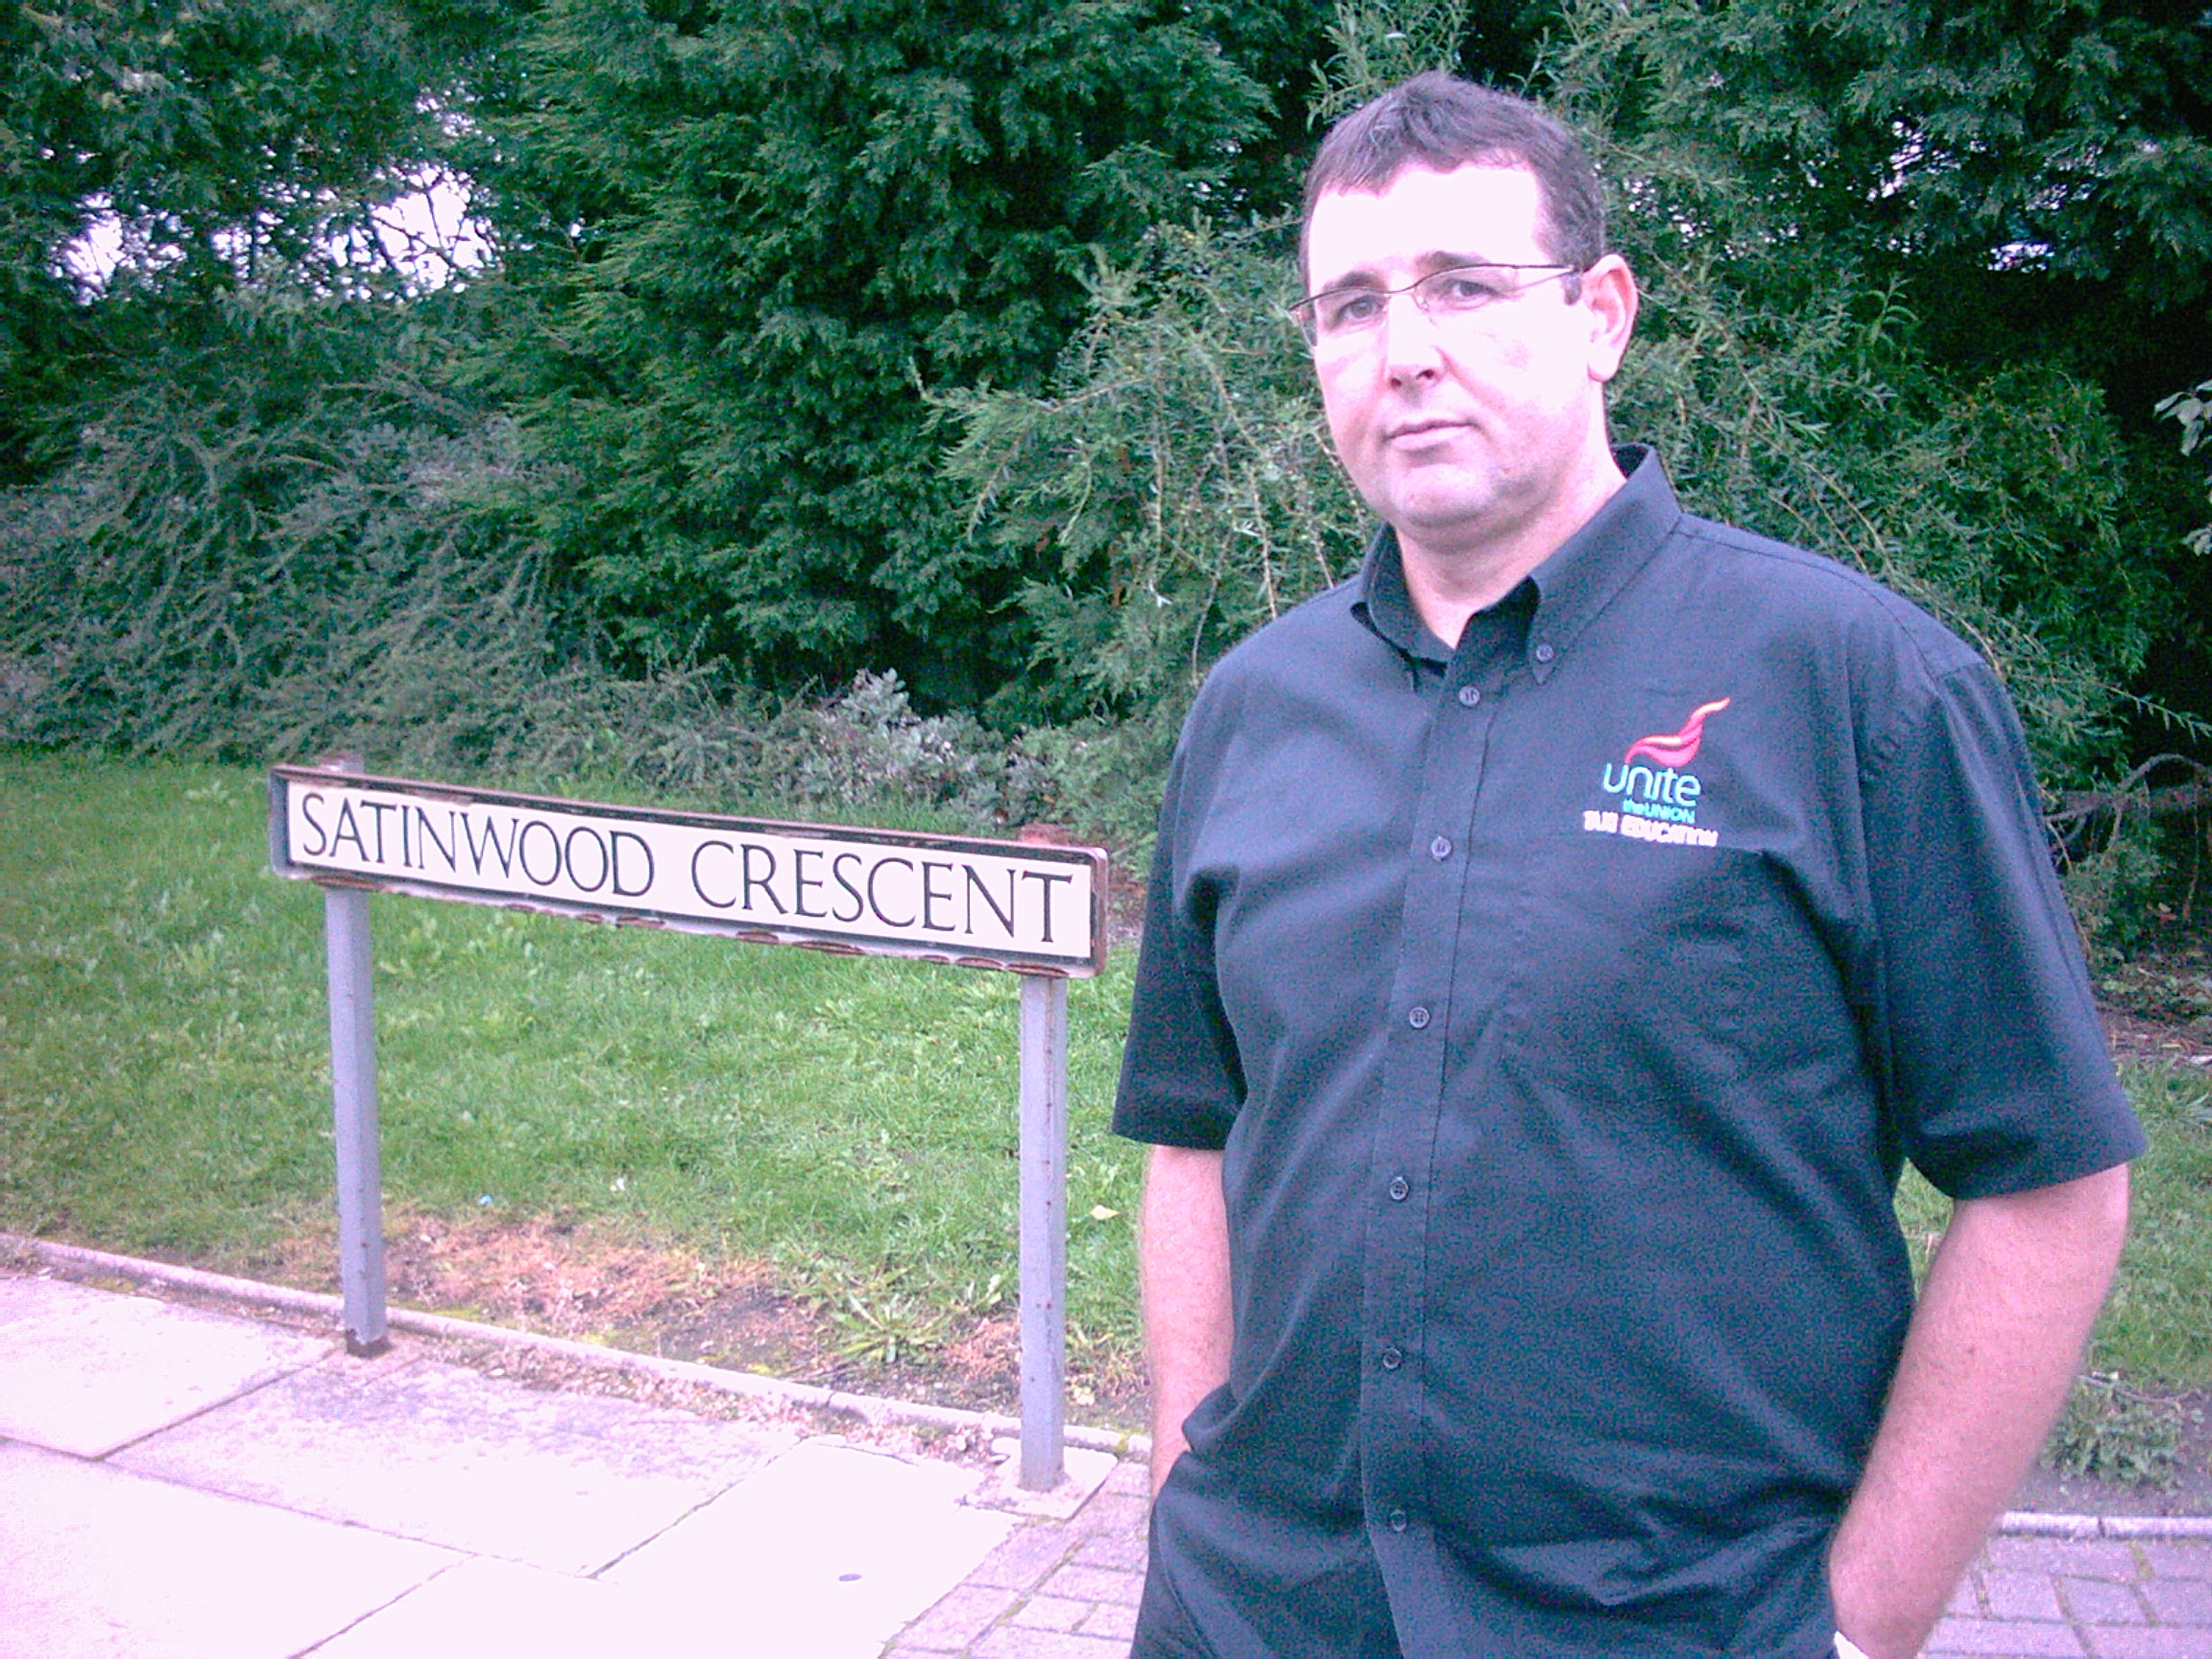 Molyneux Ward's Cllr Tony Carr at Satinwood Crescent in Melling